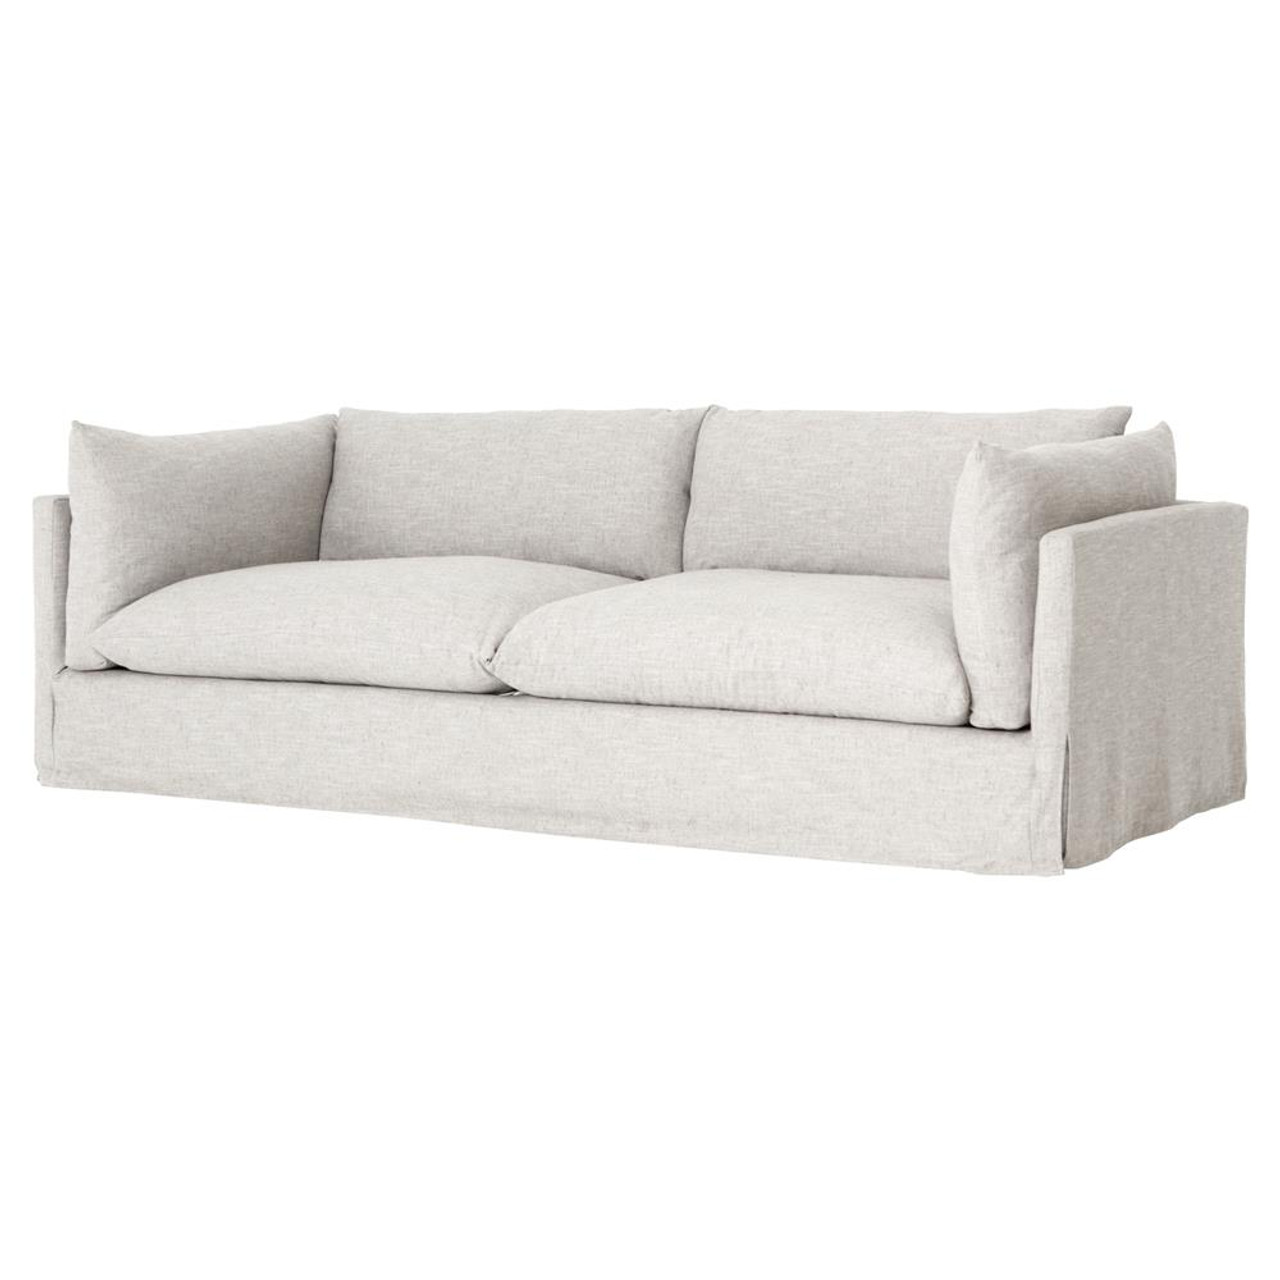 Modern Slipcovered Sofa